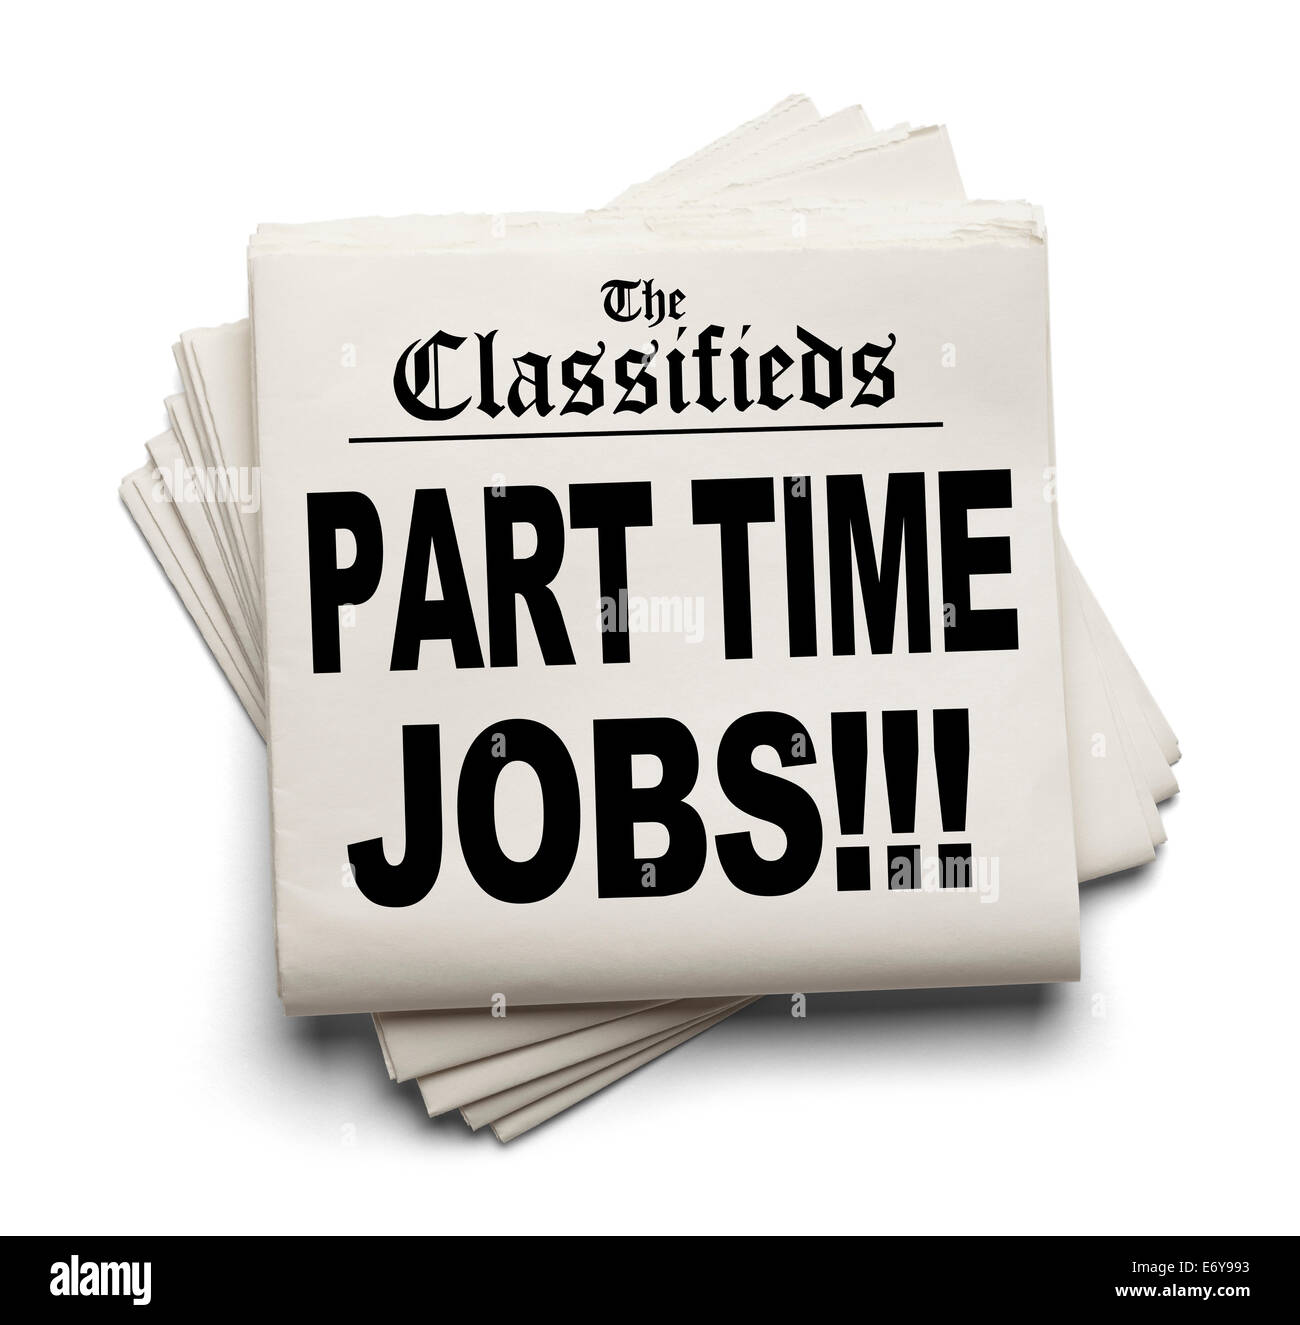 Newspaper Classifieds Part Time Jobs Headline Isolated on White Background. - Stock Image